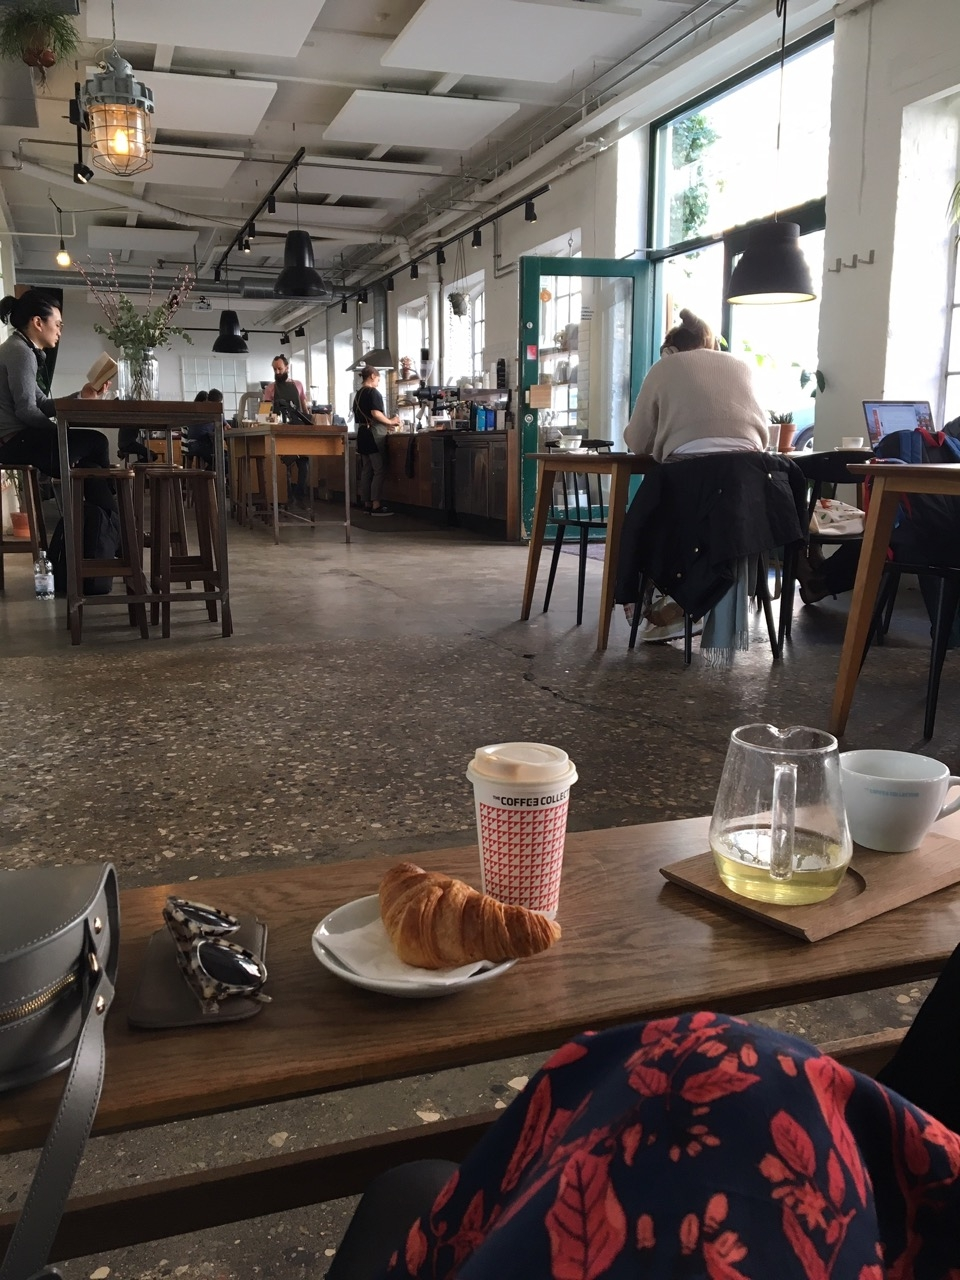 Coffee_collective_frederiksberg